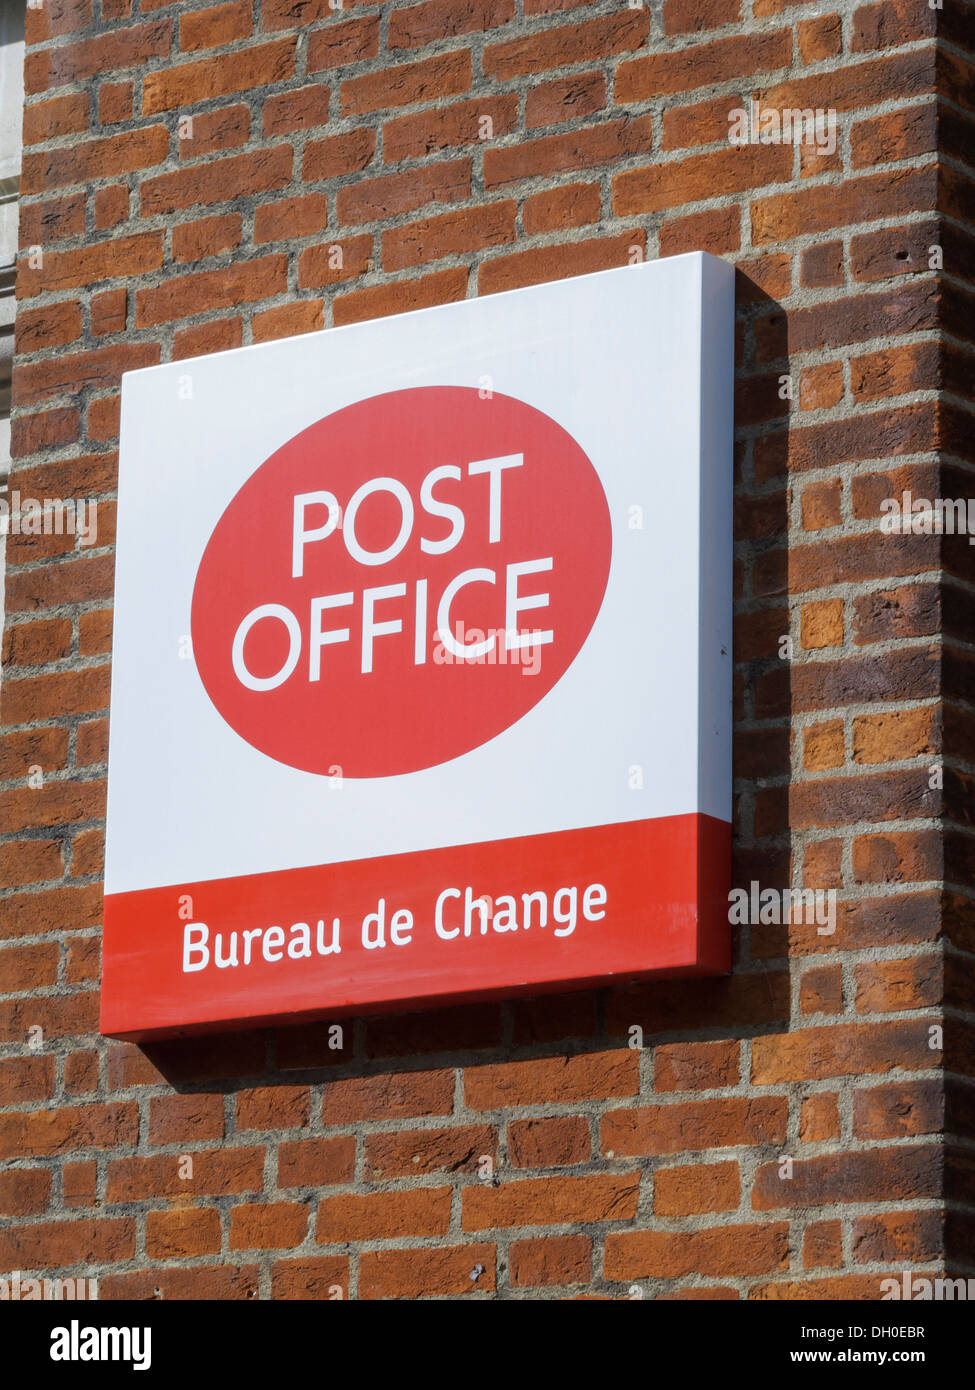 Post Office Bureau de change - Stock Image